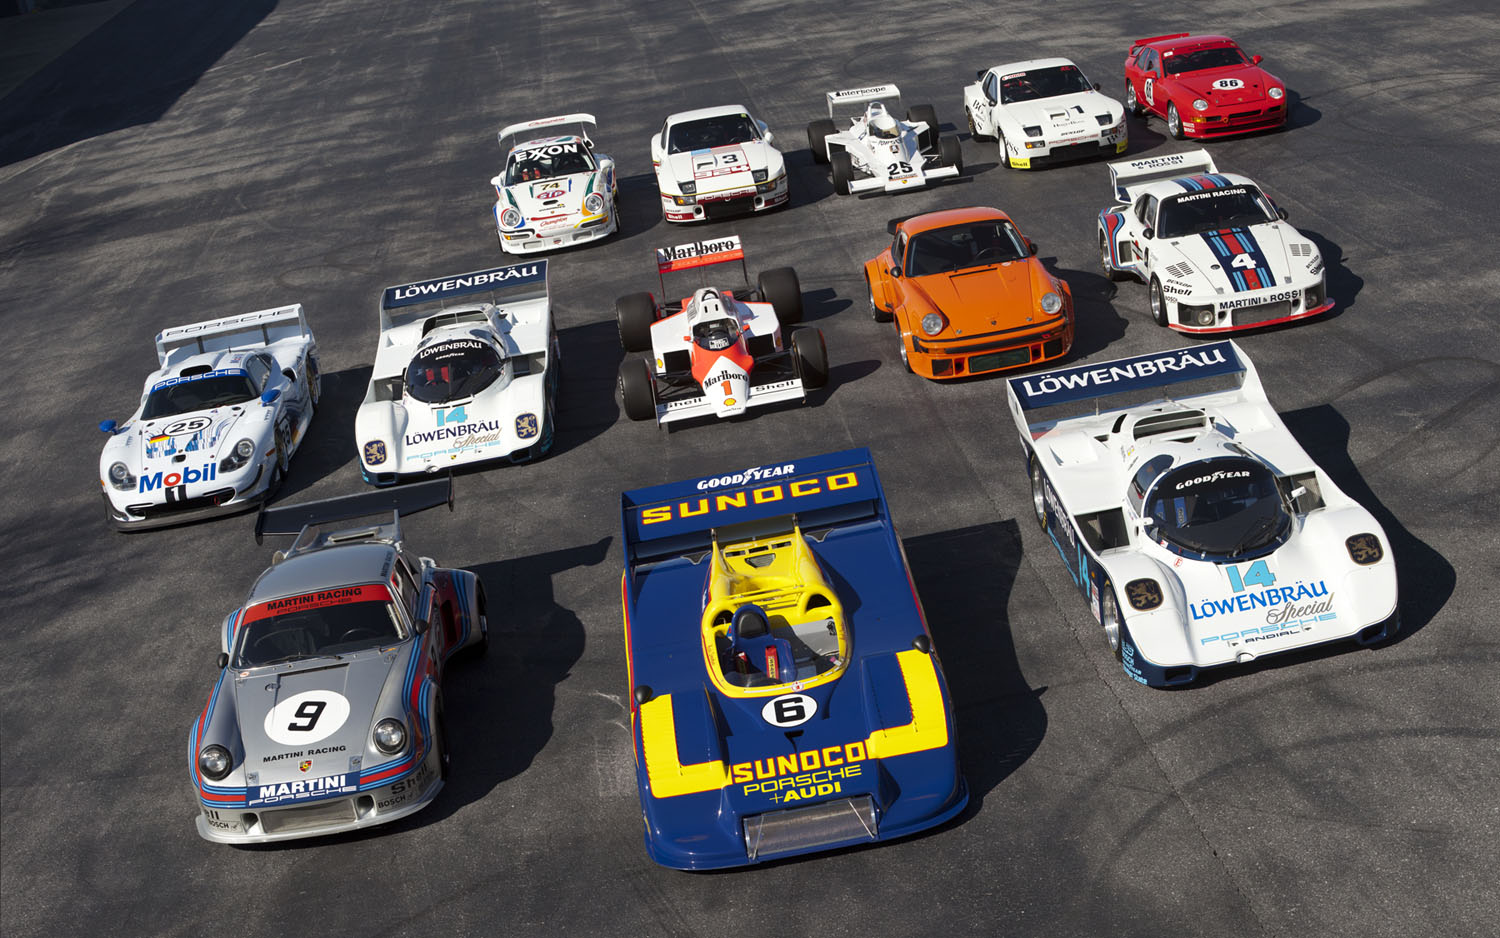 18 Rare Porsche Race Cars Ready for Amelia Island Auction - Motor Trend